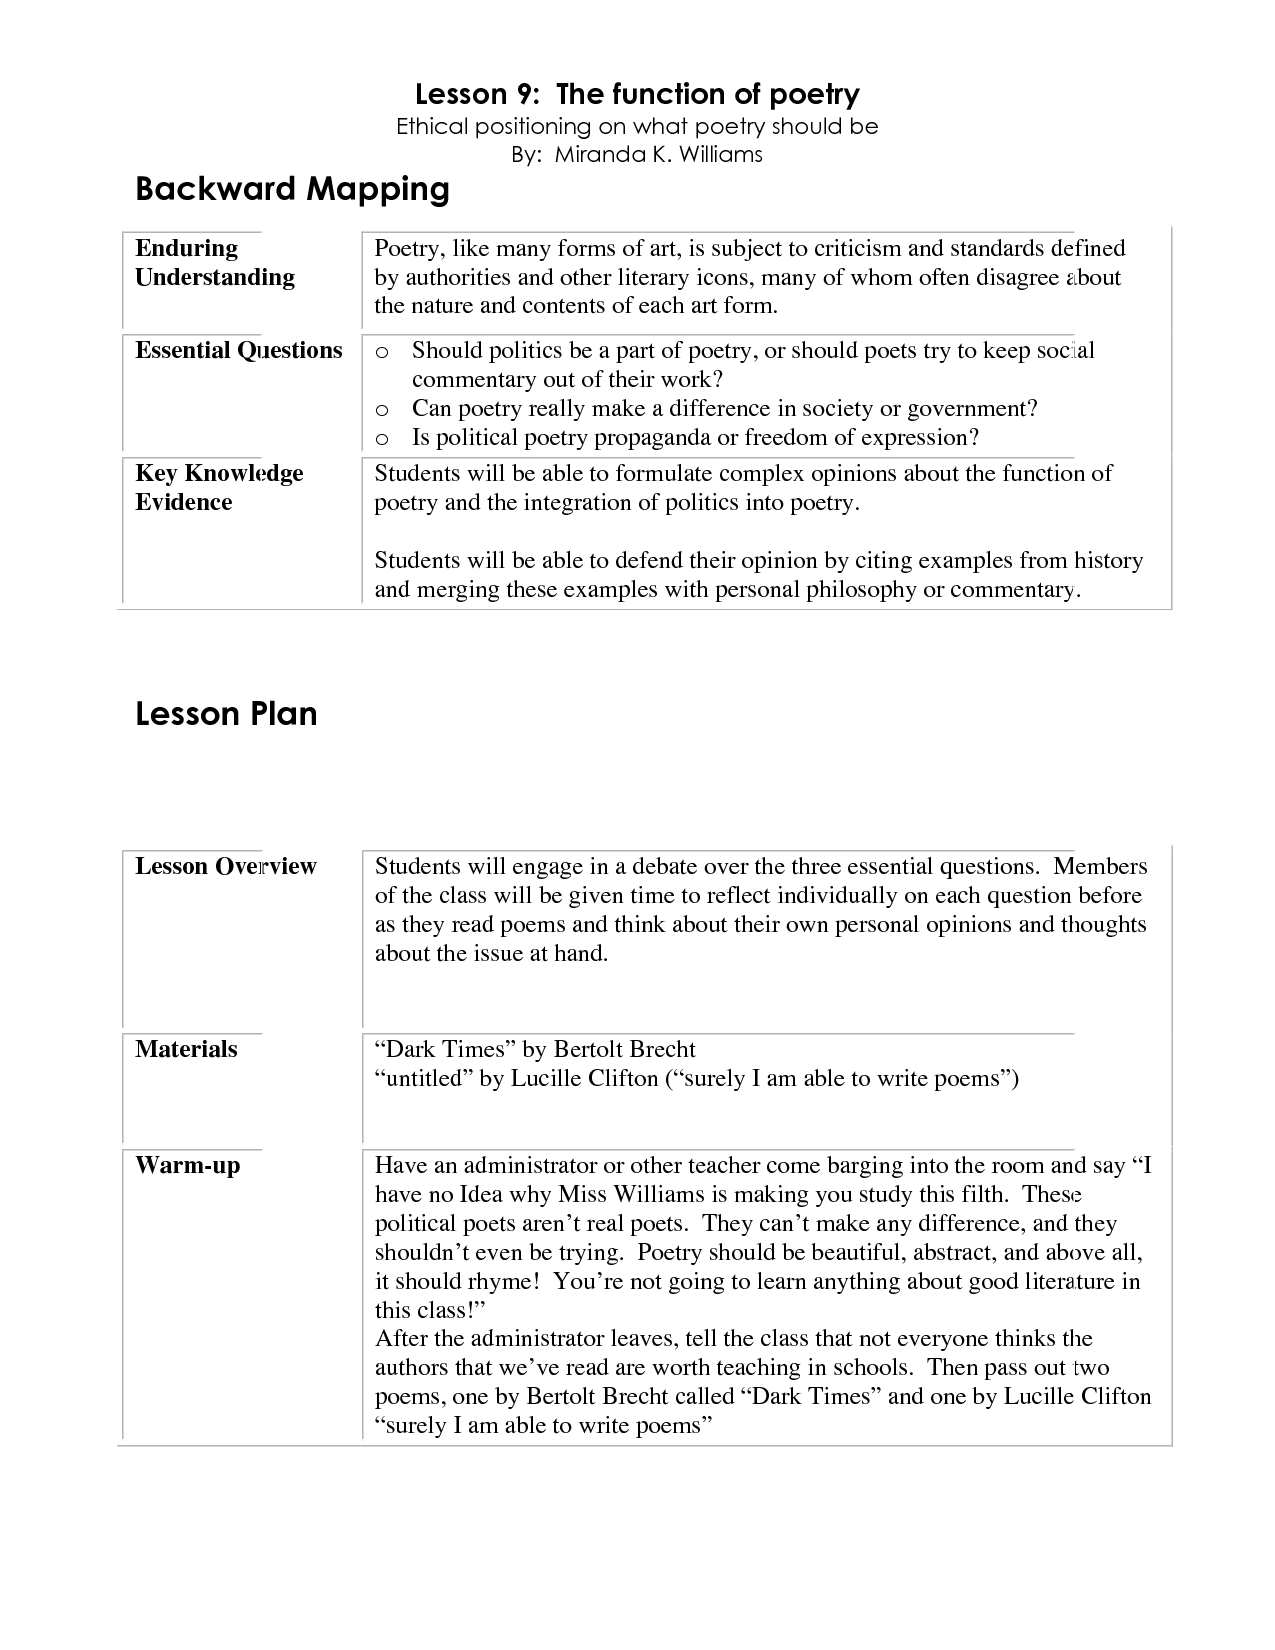 Backward planning template backward mapping lesson plan - Backwards design lesson plan examples ...